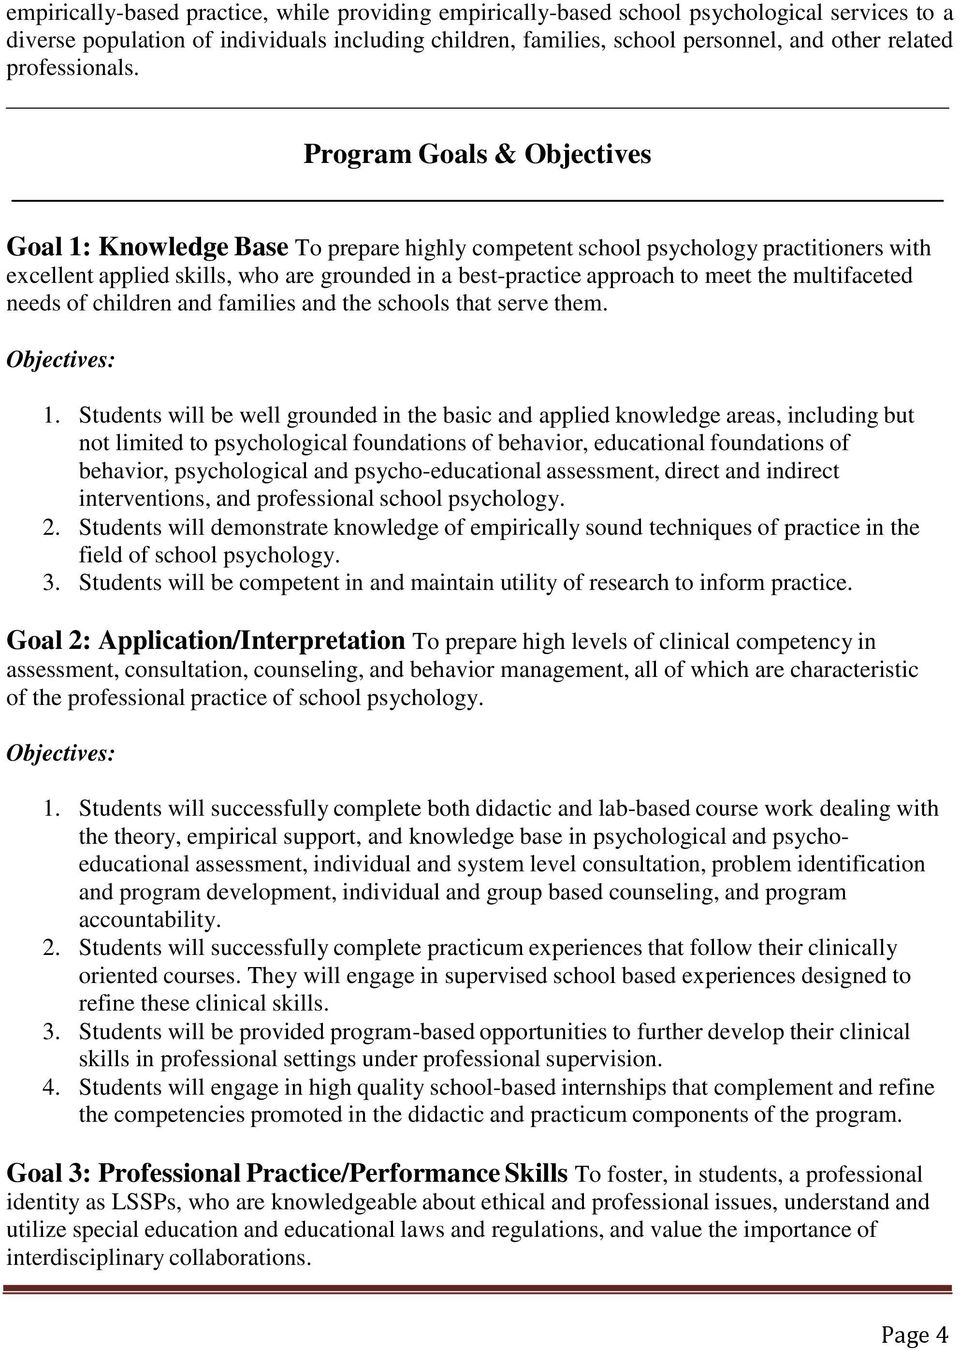 Program Goals & Objectives Goal 1: Knowledge Base To prepare highly competent school psychology practitioners with excellent applied skills, who are grounded in a best-practice approach to meet the